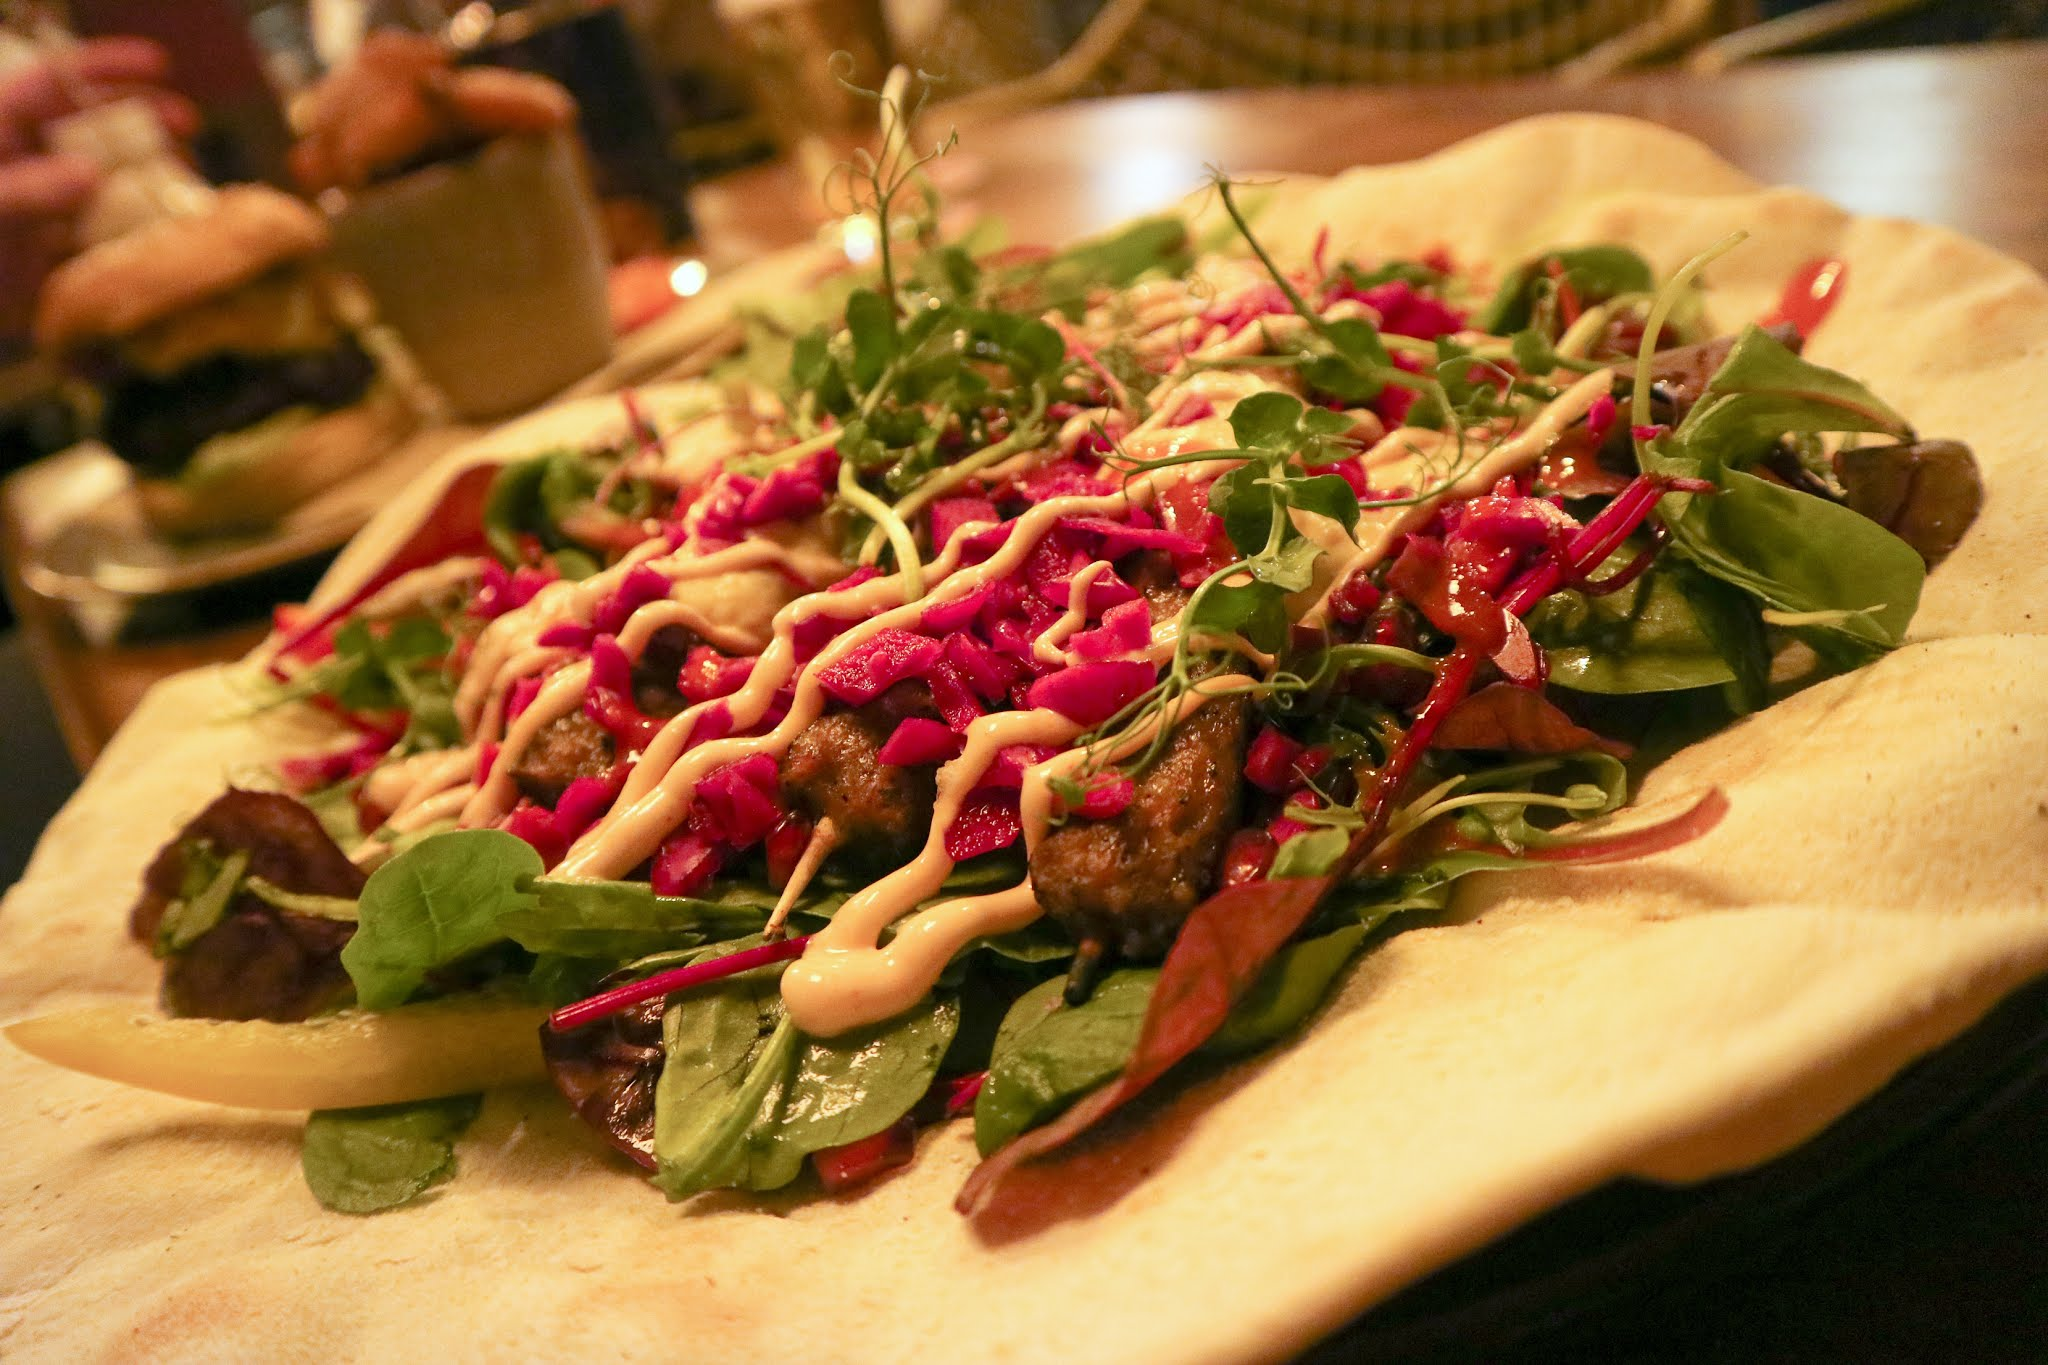 A large lamb kebab from The Ship's Cat food menu, with pomegranate seeds and salad